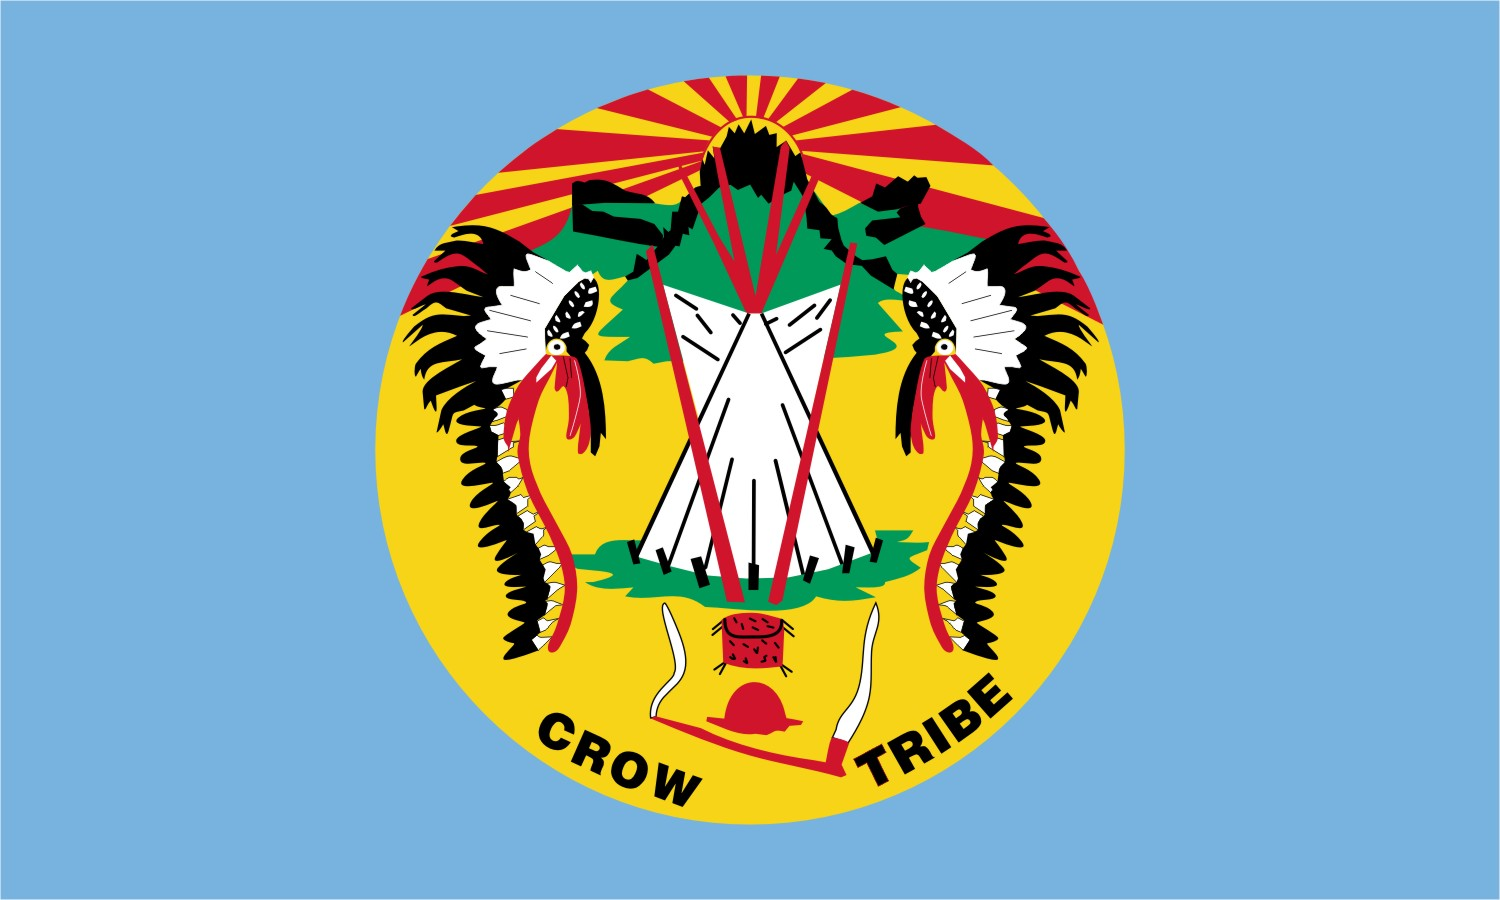 Crow Tribe sponsors billboard proclaiming 'Jesus Christ Is Lord'